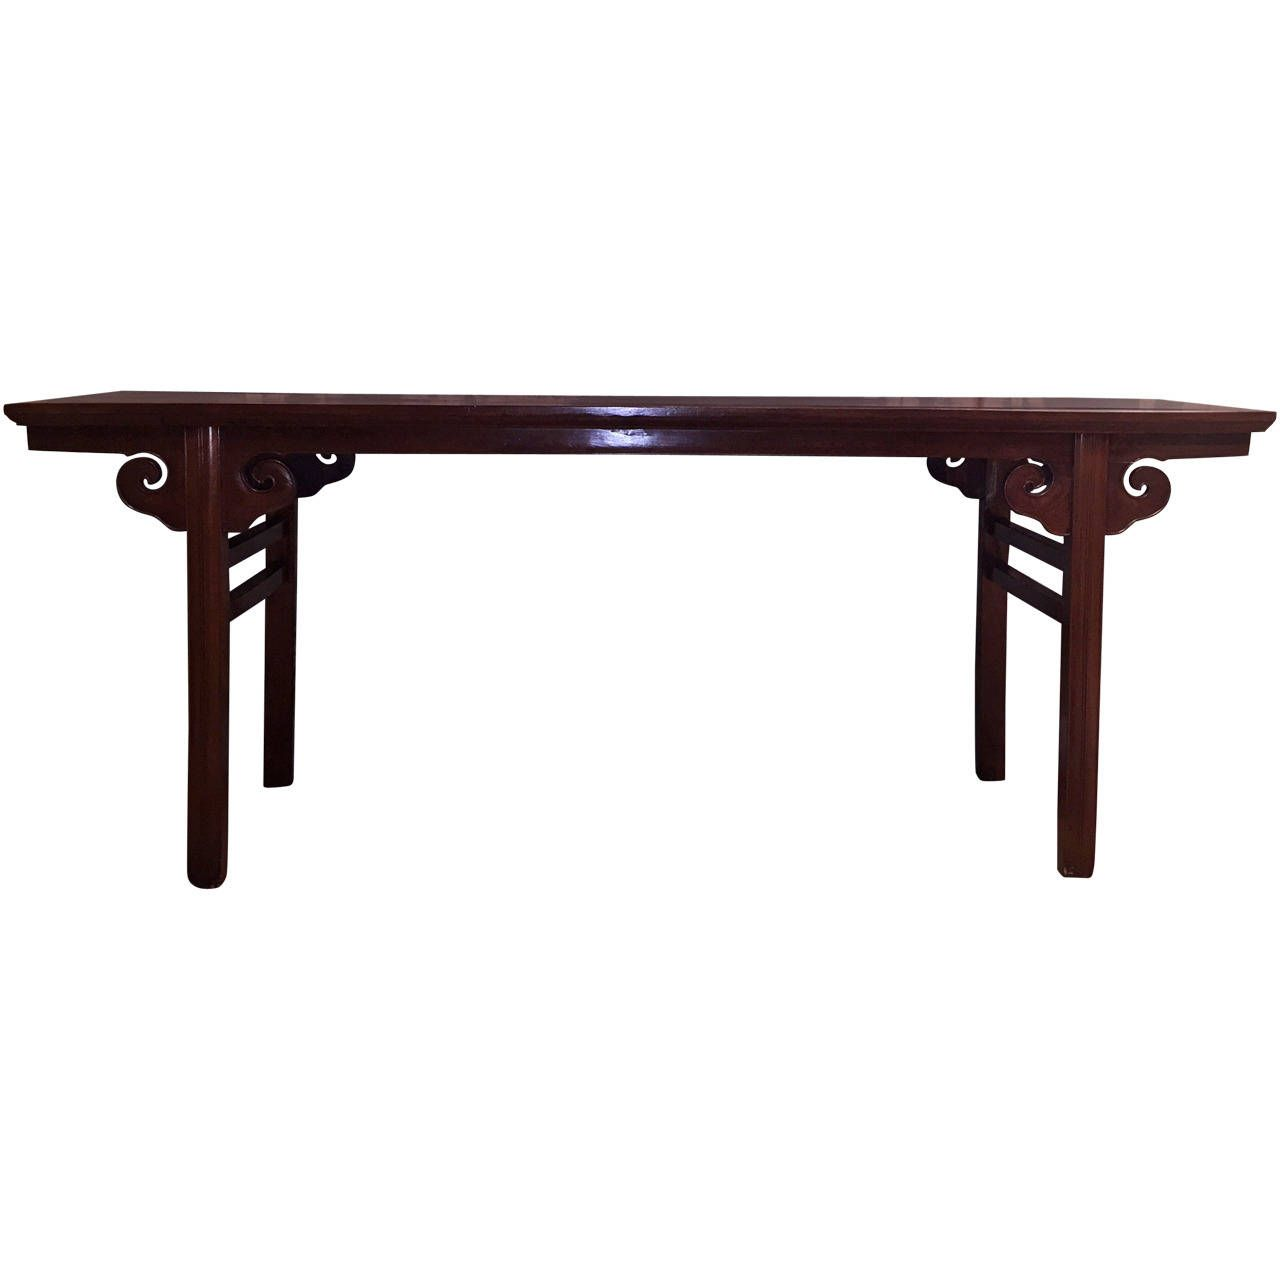 18th century chinese jumu console from a unique collection of view this item and discover similar console tables for sale at a lovely and gracefully shaped antique chinese console table wood is jumu geotapseo Gallery